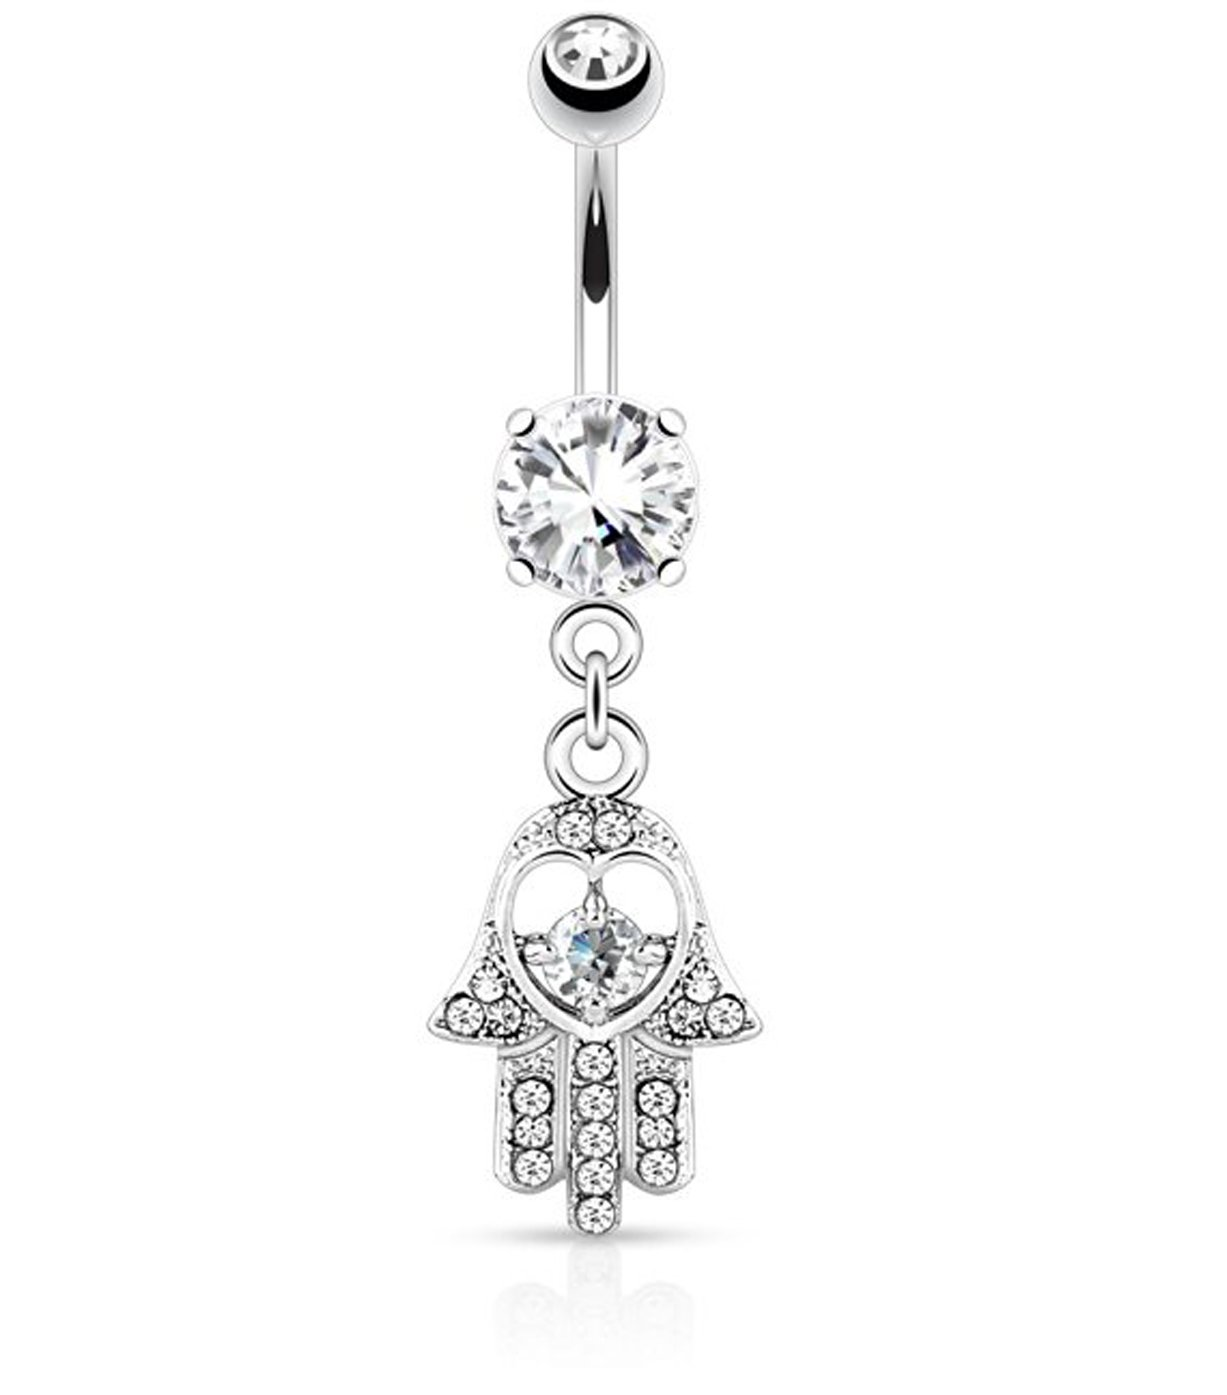 316L Surgical Steel 14 Gauge Belly Ring / Navel Button Piercing / Bananabell / Barbell With Hamsa Hand Pendant Decoration and Clear Crystals / Rhinestones VAGA 694263916385